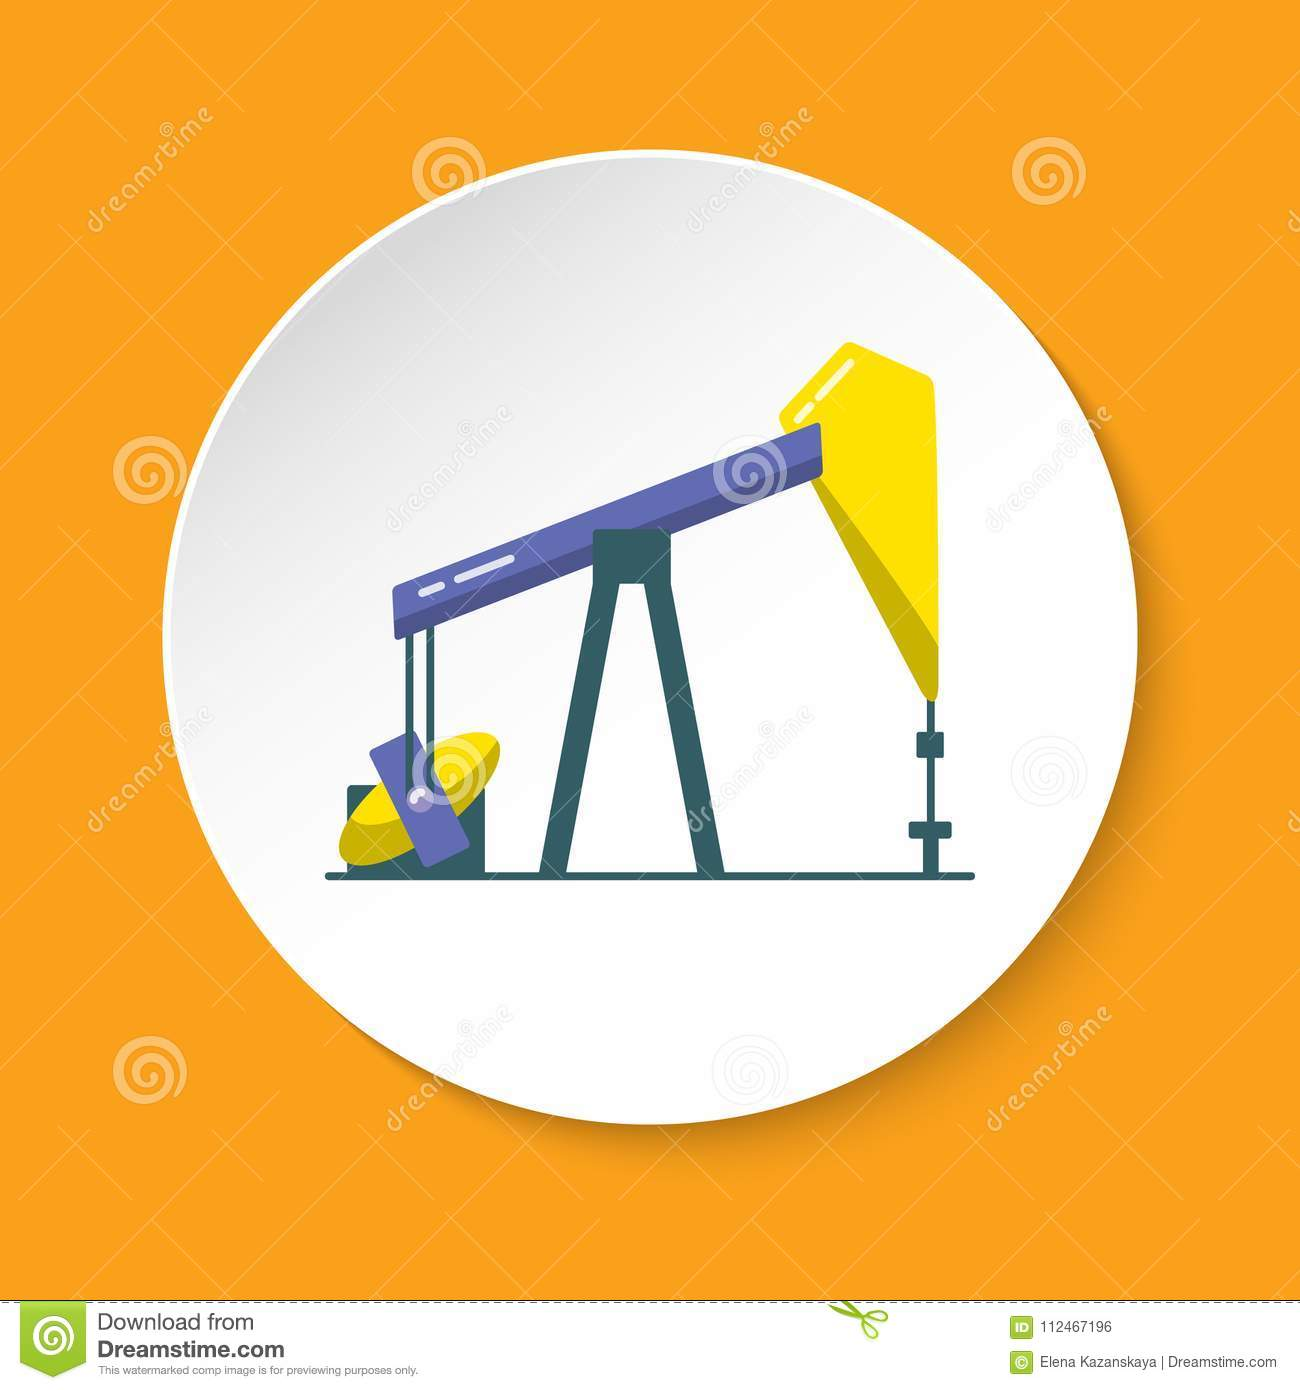 Oil rig icon in flat style on round button